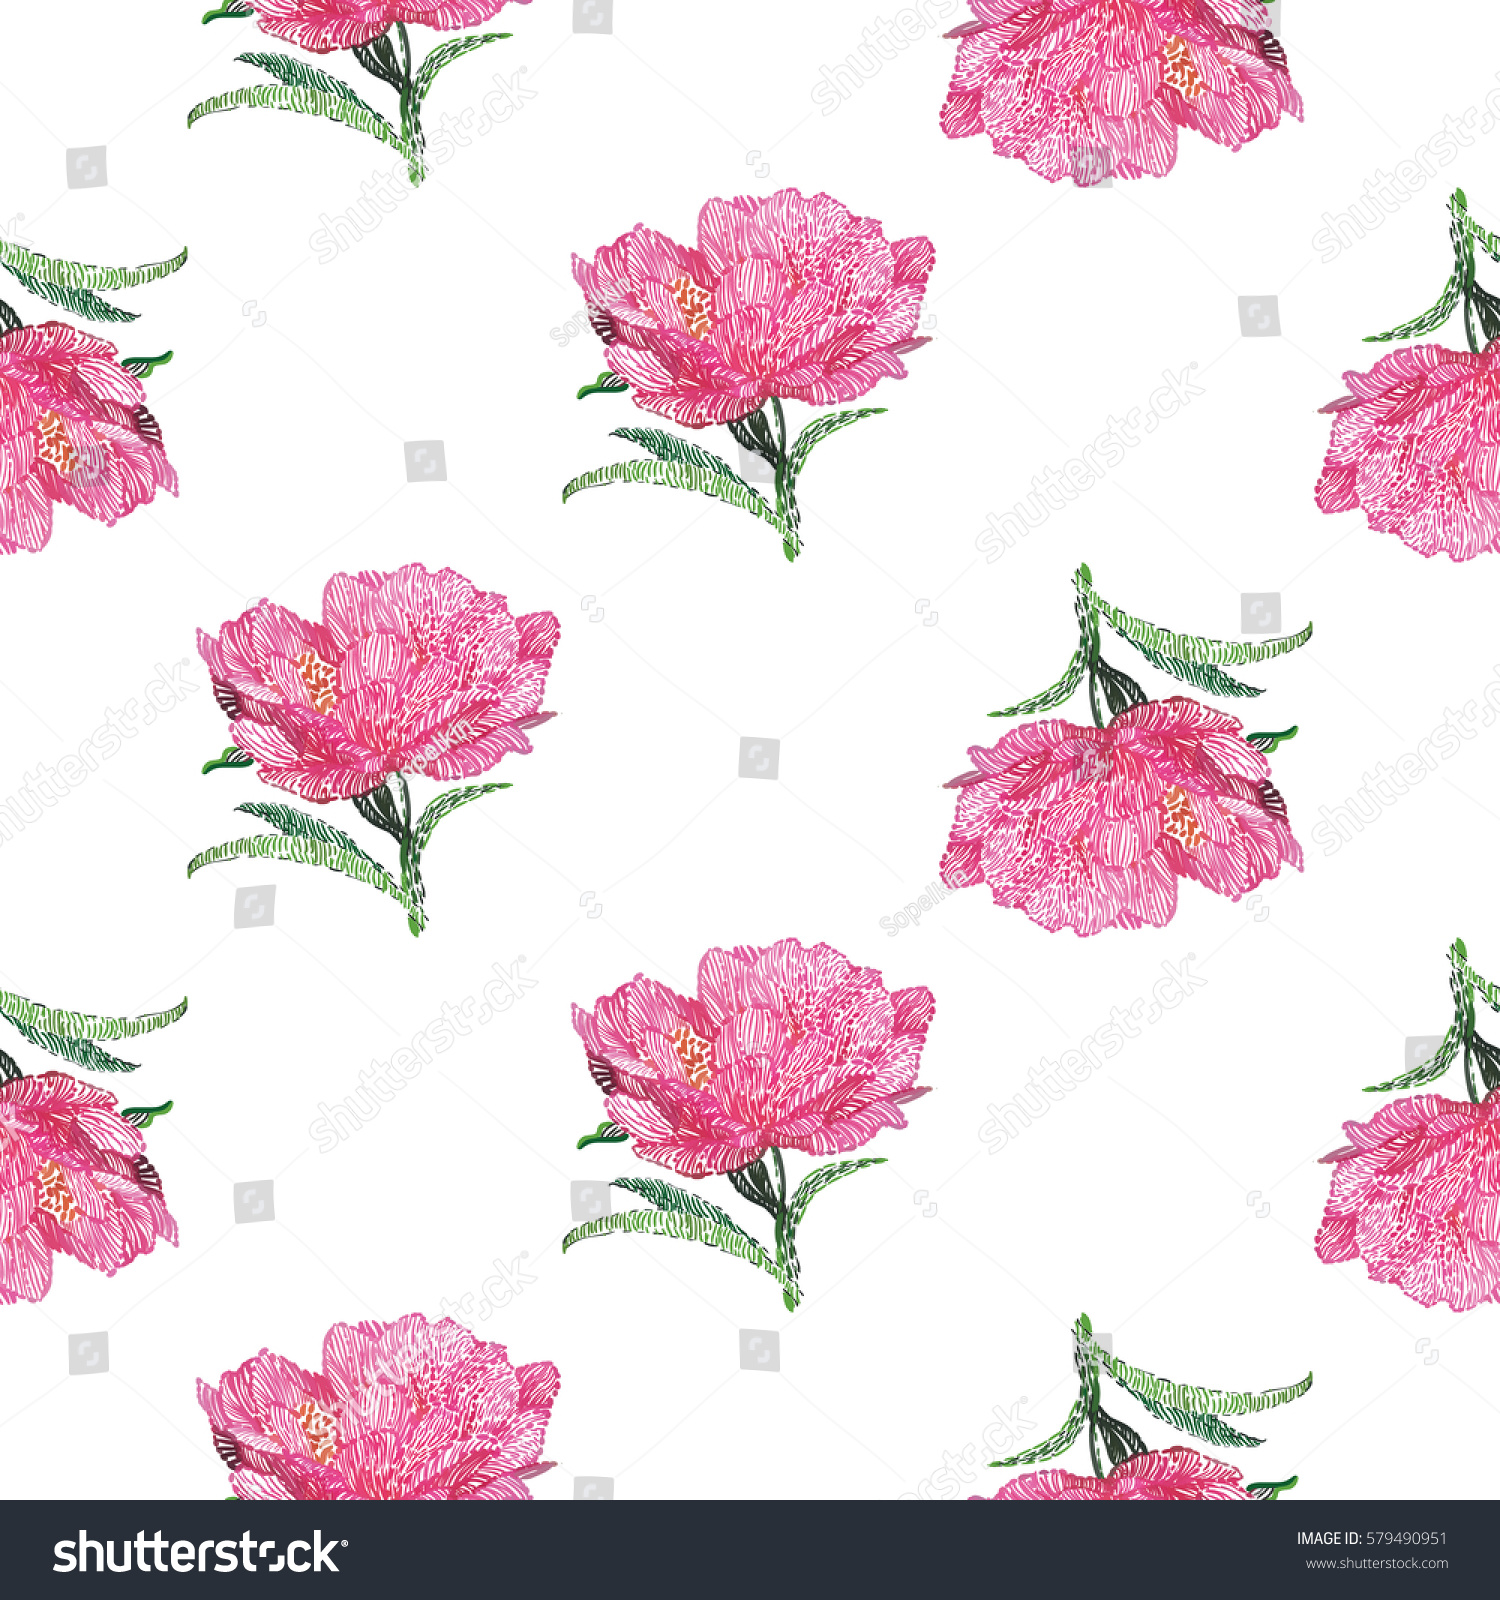 Vector Embroidery Vintage Embroidery Peony Sketch Flower Peony